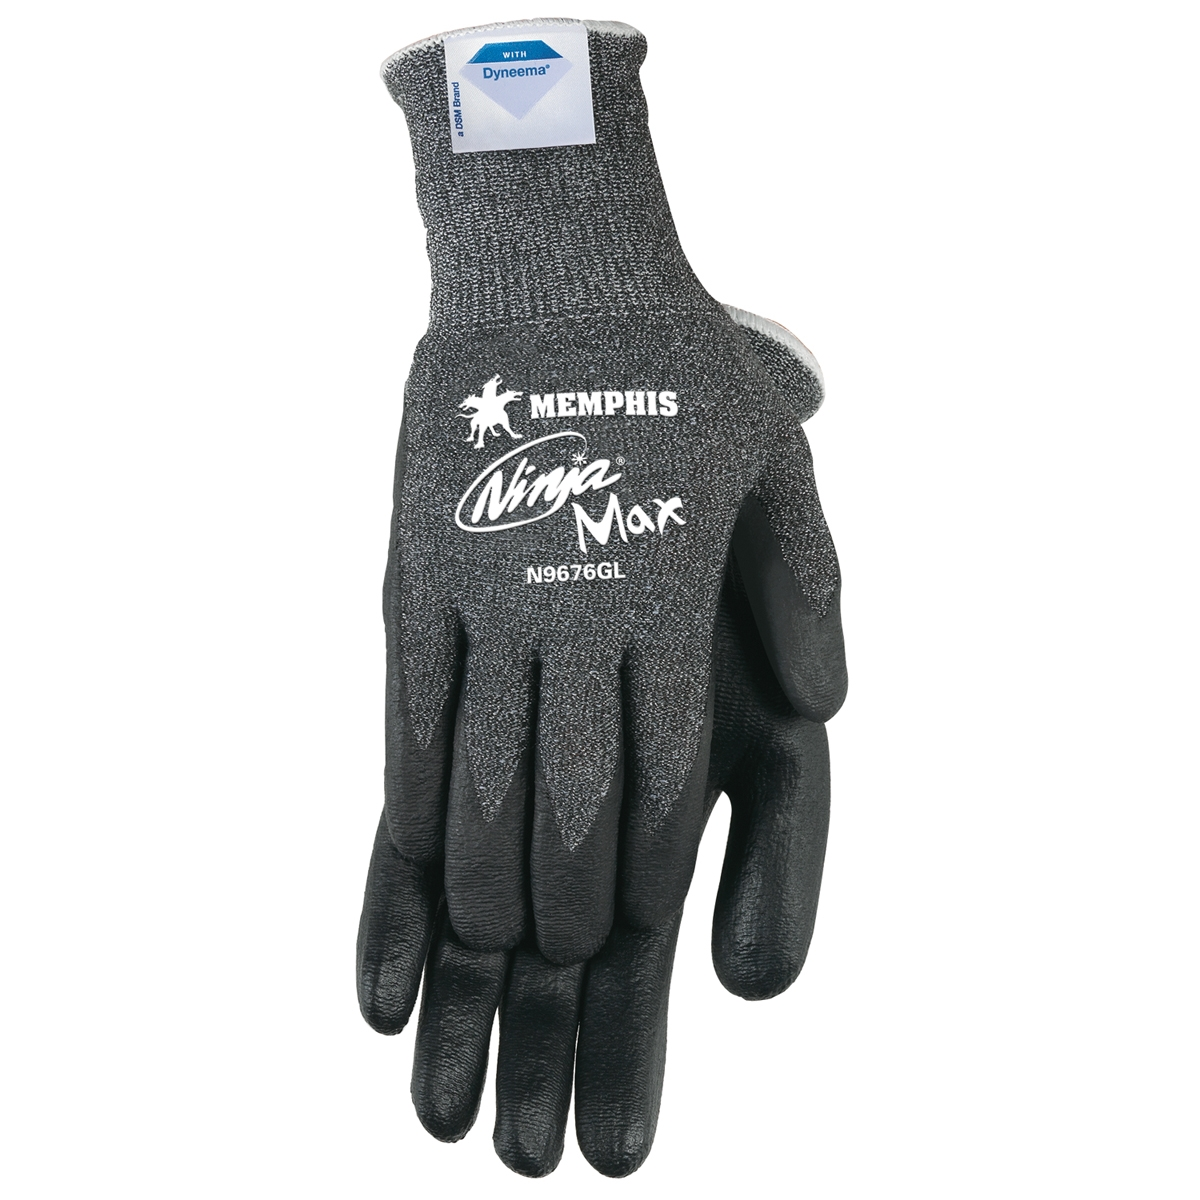 N9676G : MCR Safety Ninja Max Gloves